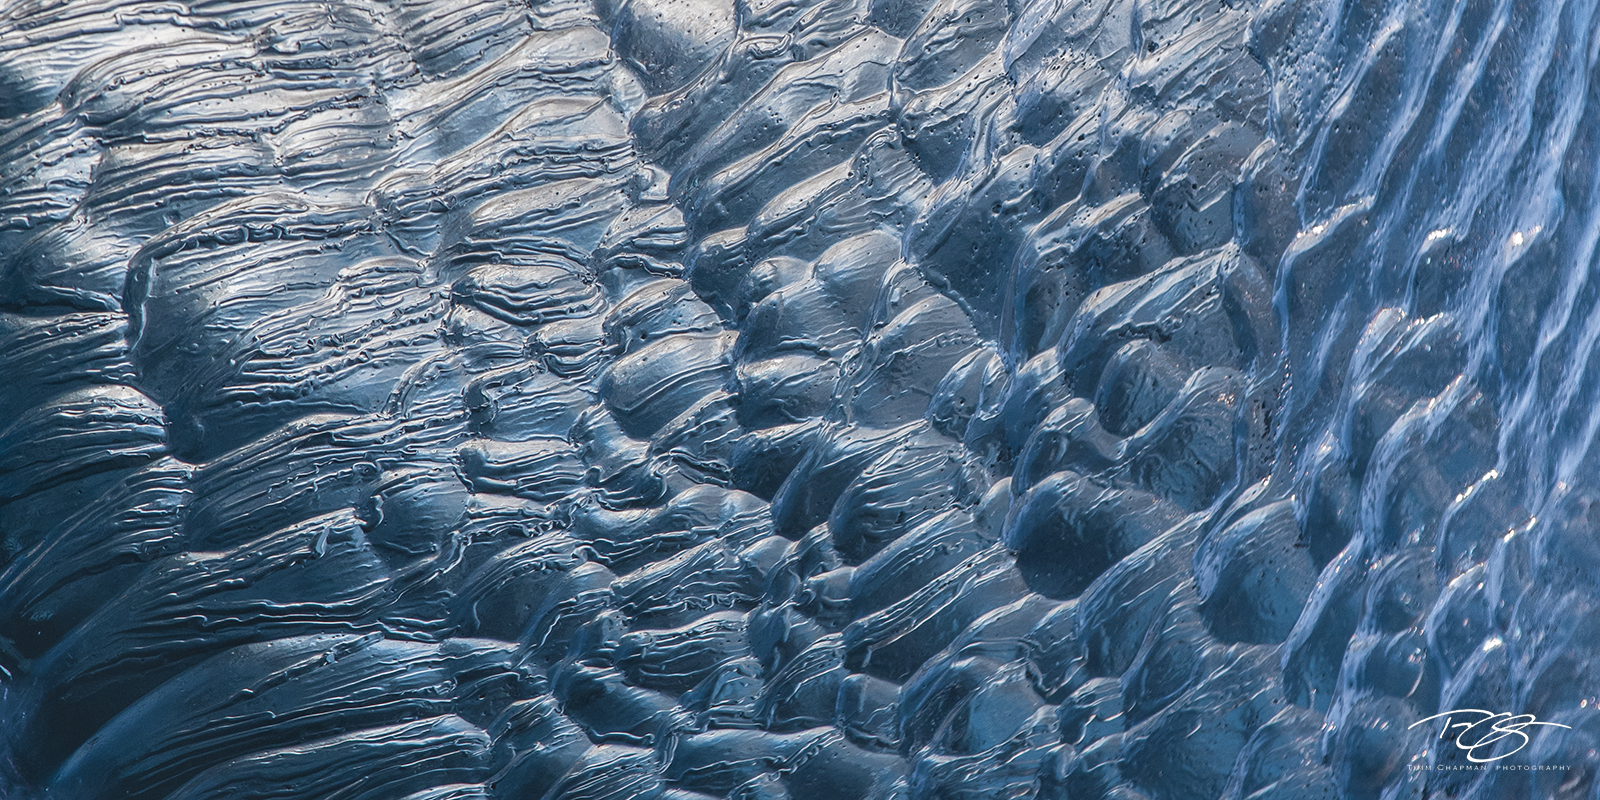 ice, iceberg, abstract, aquamosaic, blue, water, frozen, iceland, patterns, glacier, photo